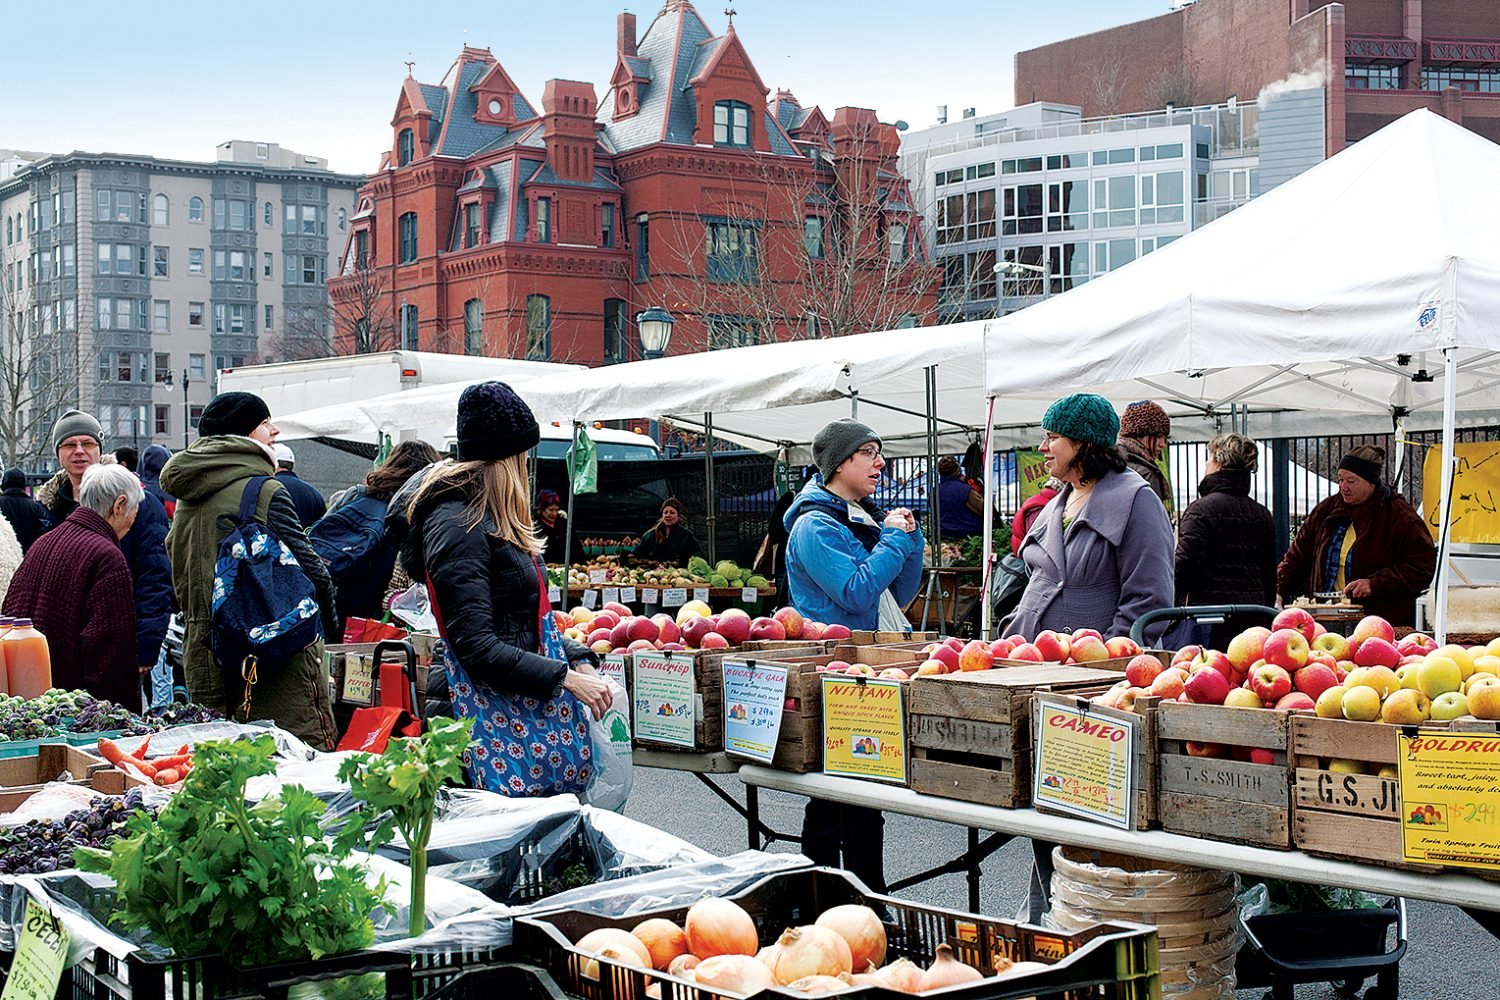 Dupont's Sunday farmers market is a favorite among local chefs. Photograph by Hong Le.